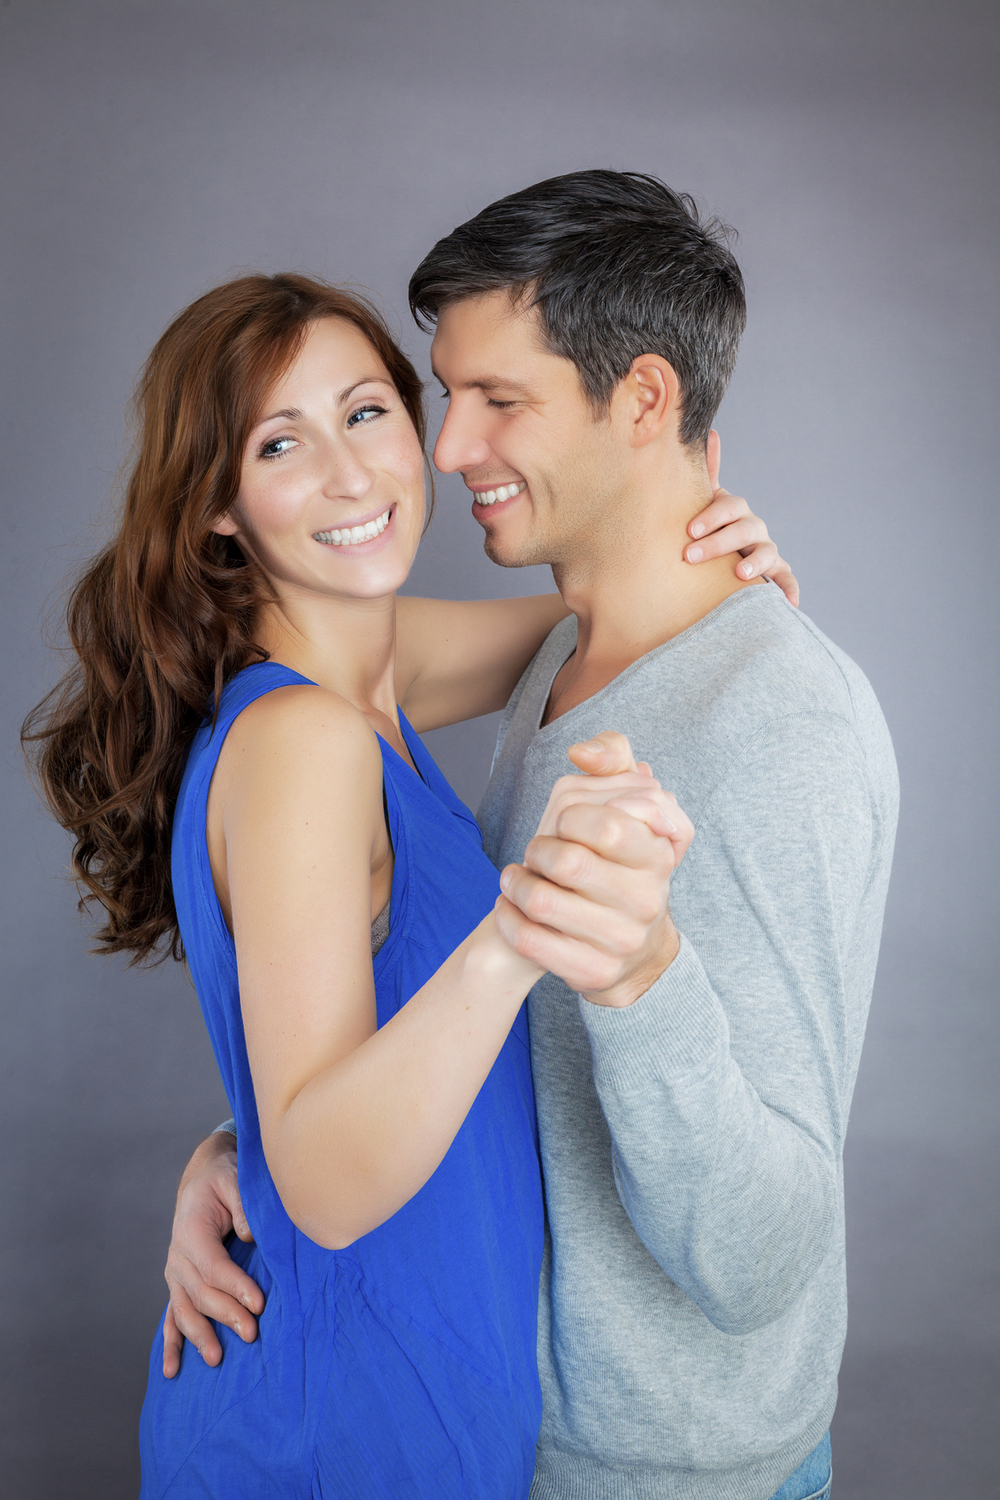 Taking dance lessons as a couple is a fun way to spend some one-on-one time and learn a new skill together.